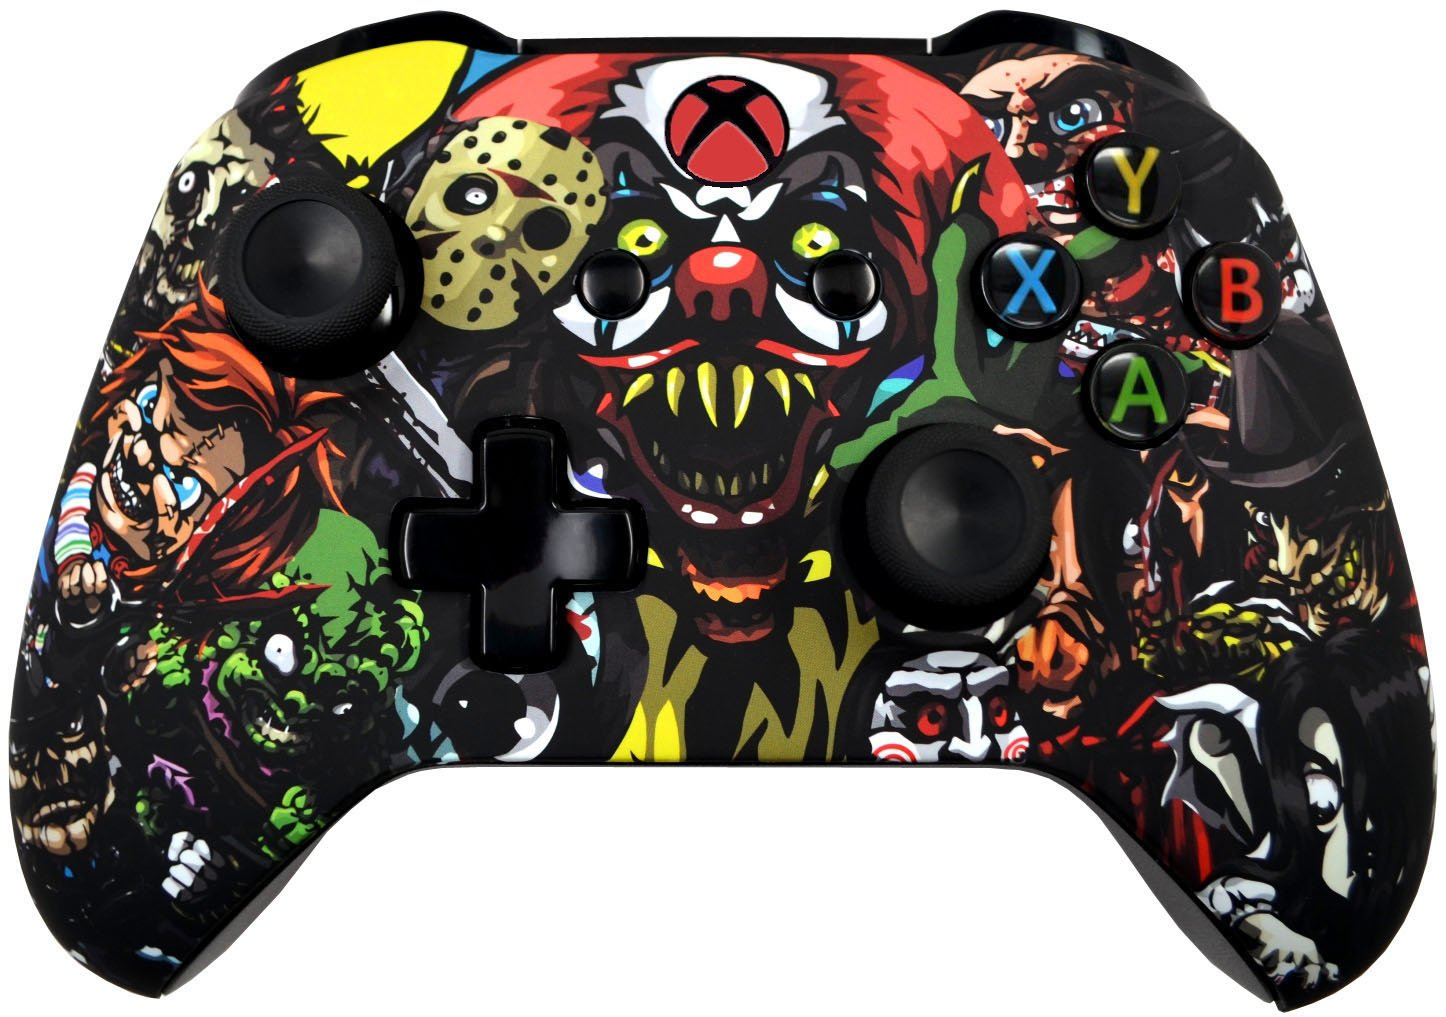 Buy Scary Party Controller Now!